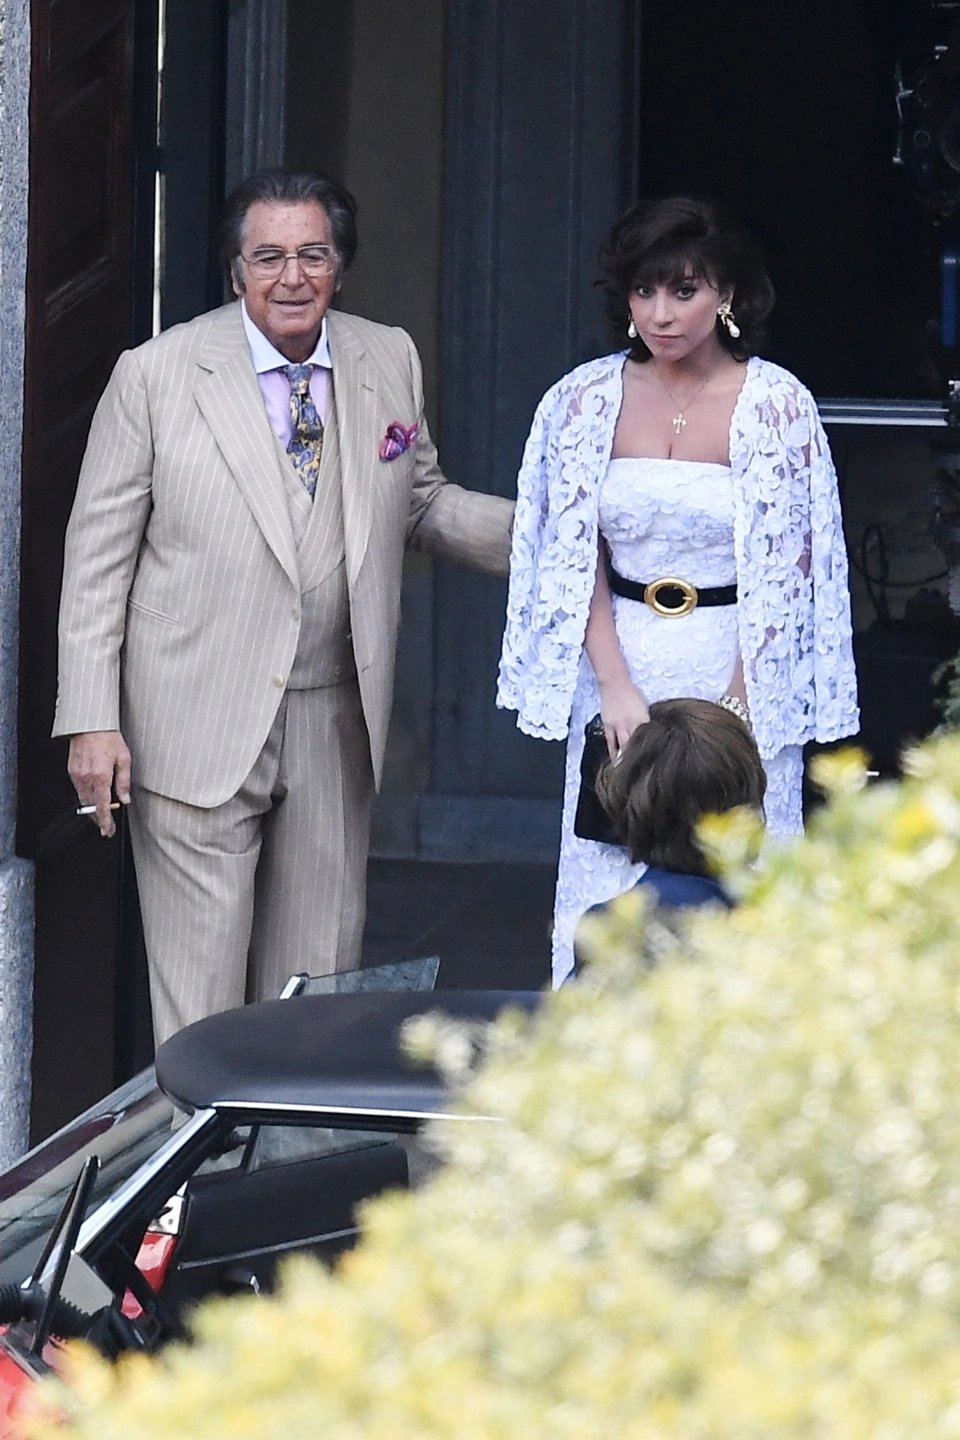 house-of-gucci-al-pacino-lady-gaga_jpg_960x0_crop_q85